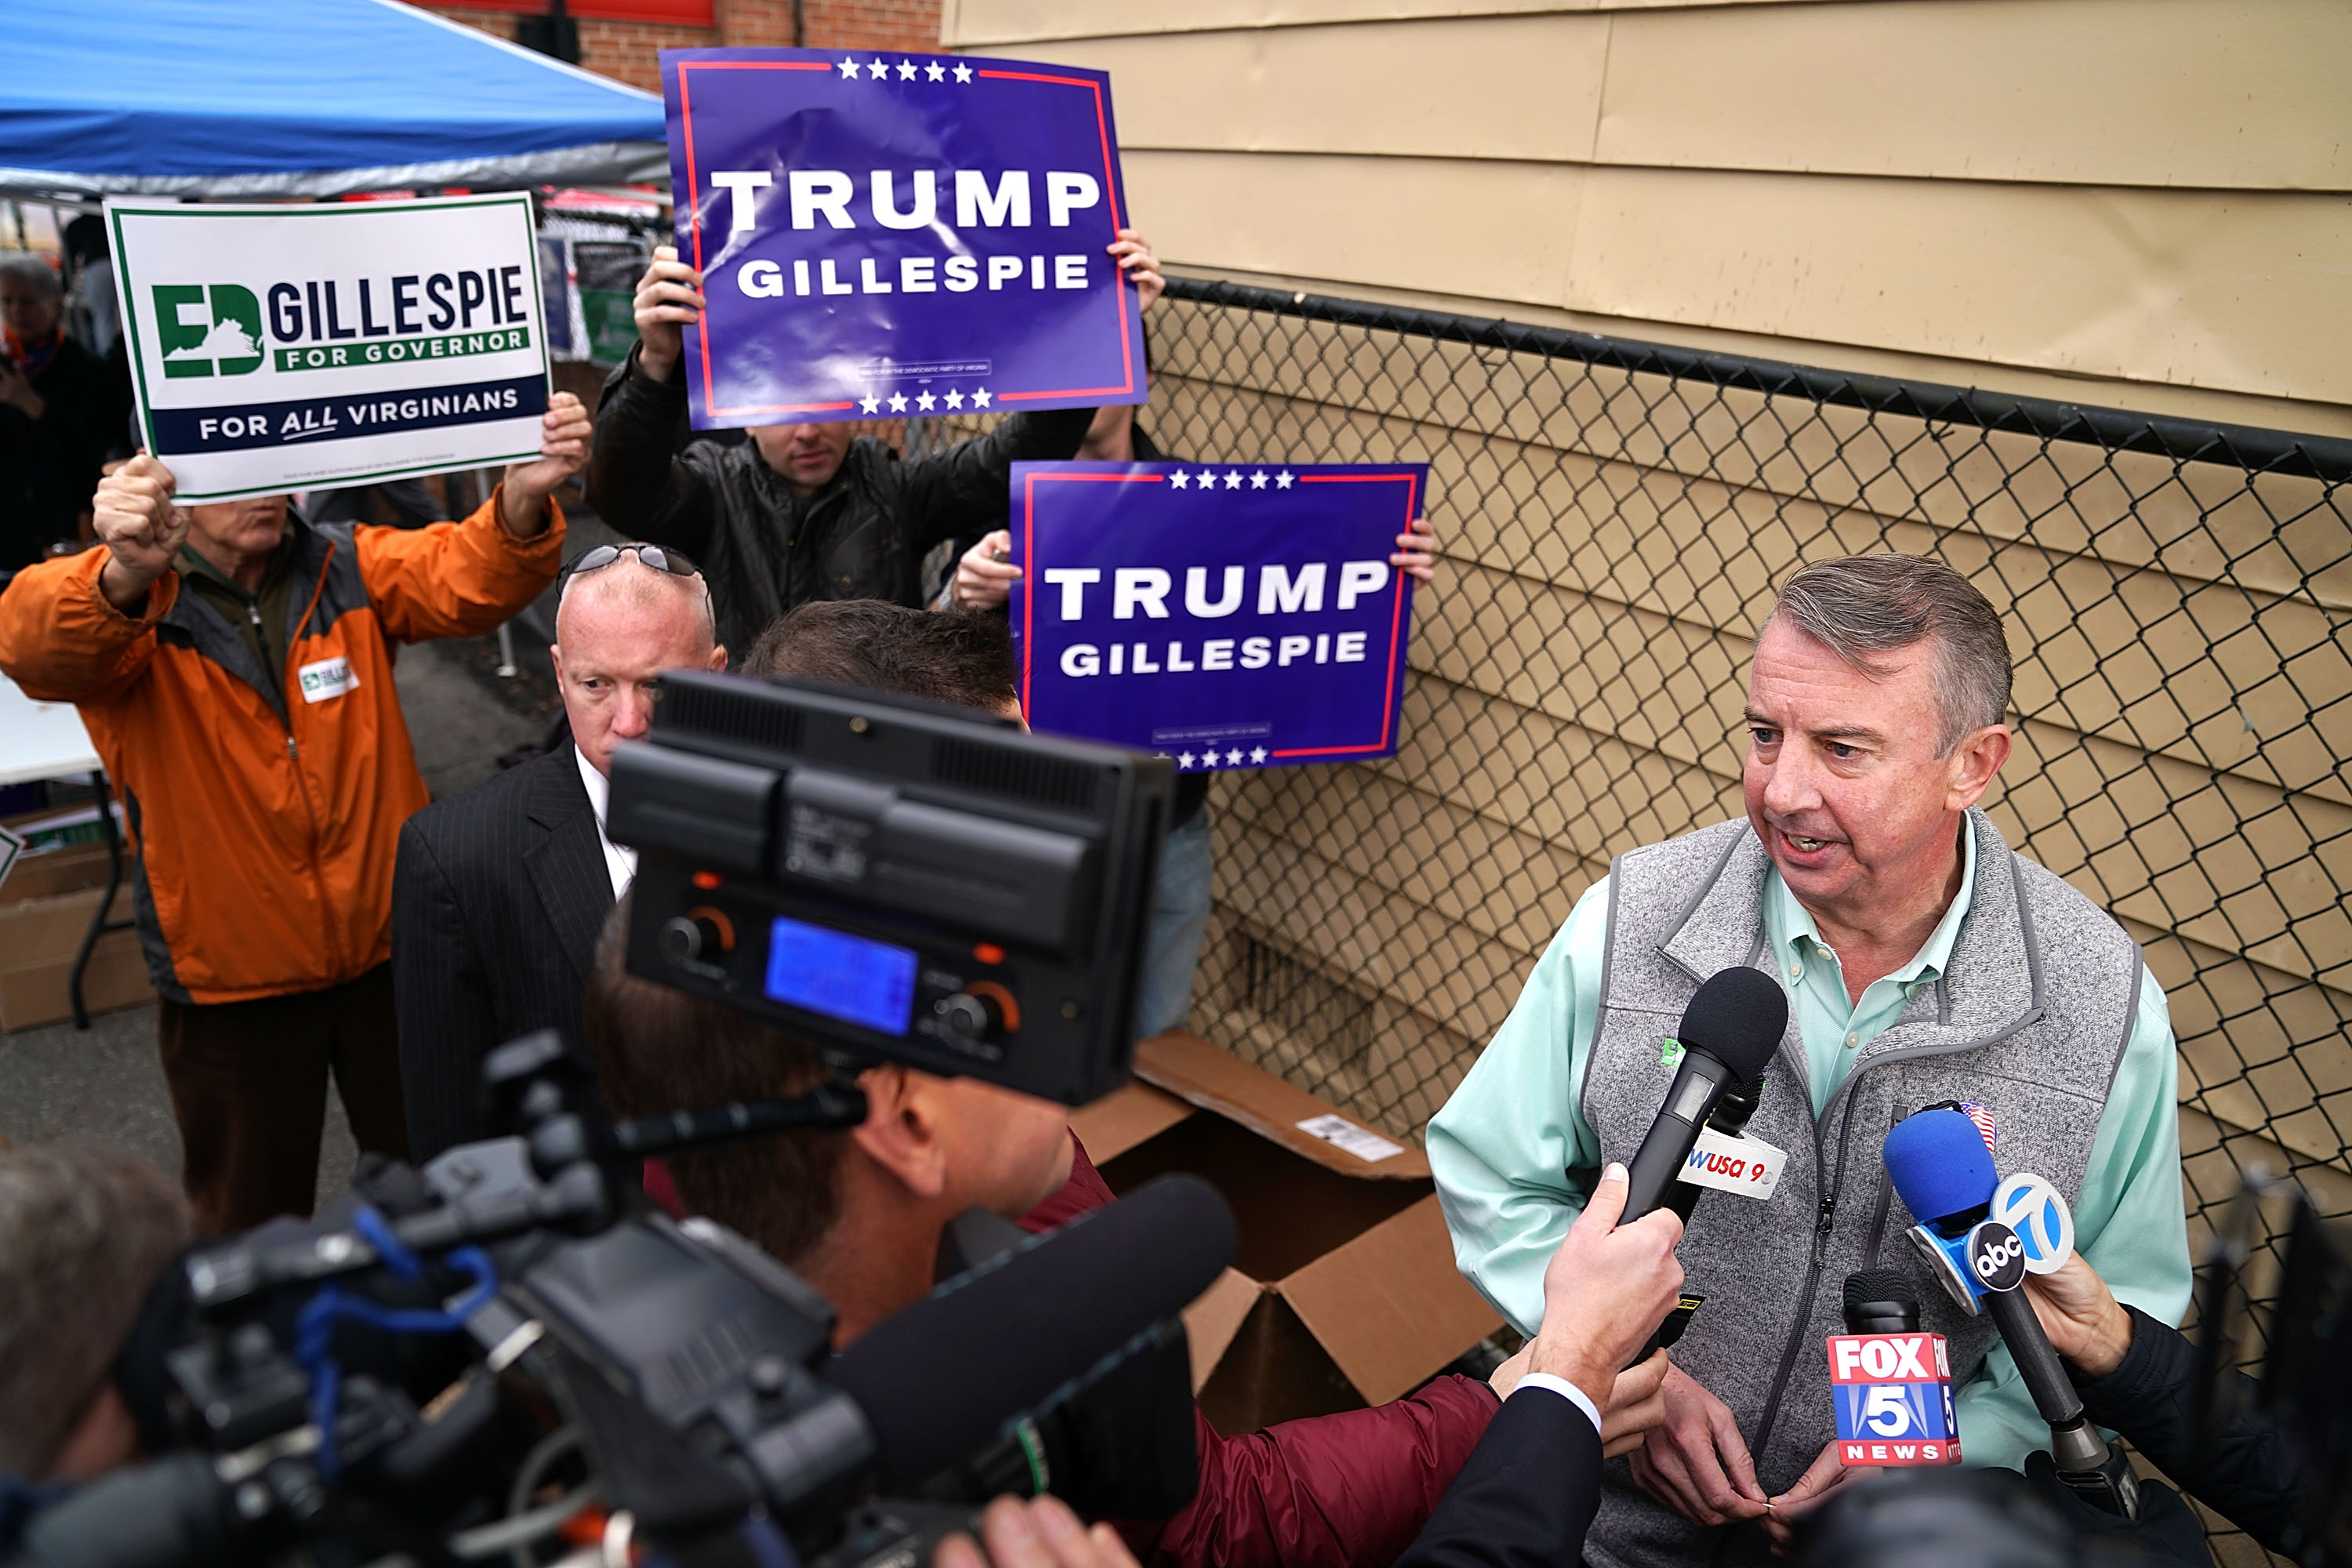 ALEXANDRIA, VA - NOVEMBER 07:  Republican candidate for Virginia governor Ed Gillespie talks to journalists after casting his vote at the polling place at Washington Mill Elementary School November 7, 2017 in Alexandria, Virginia. In a race that many see as a test of the Republican administration of President Donald Trump, Gillespie is running against the commonwealth's current lieutenant governor, Democrat Ralph Northam.  (Photo by Chip Somodevilla/Getty Images)